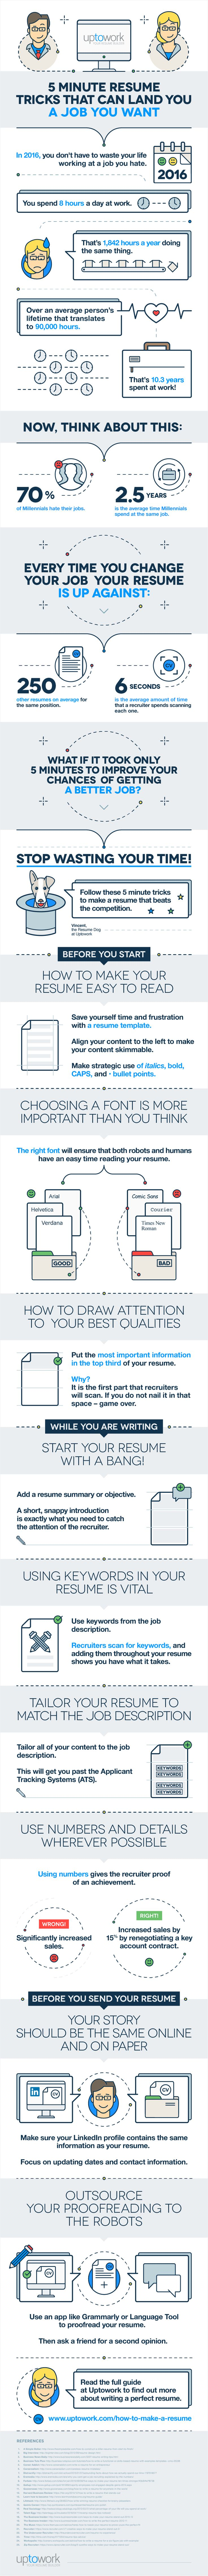 7 tips on how to write a resume that grabs recruiters attention infographic - How To Write The Best Resume